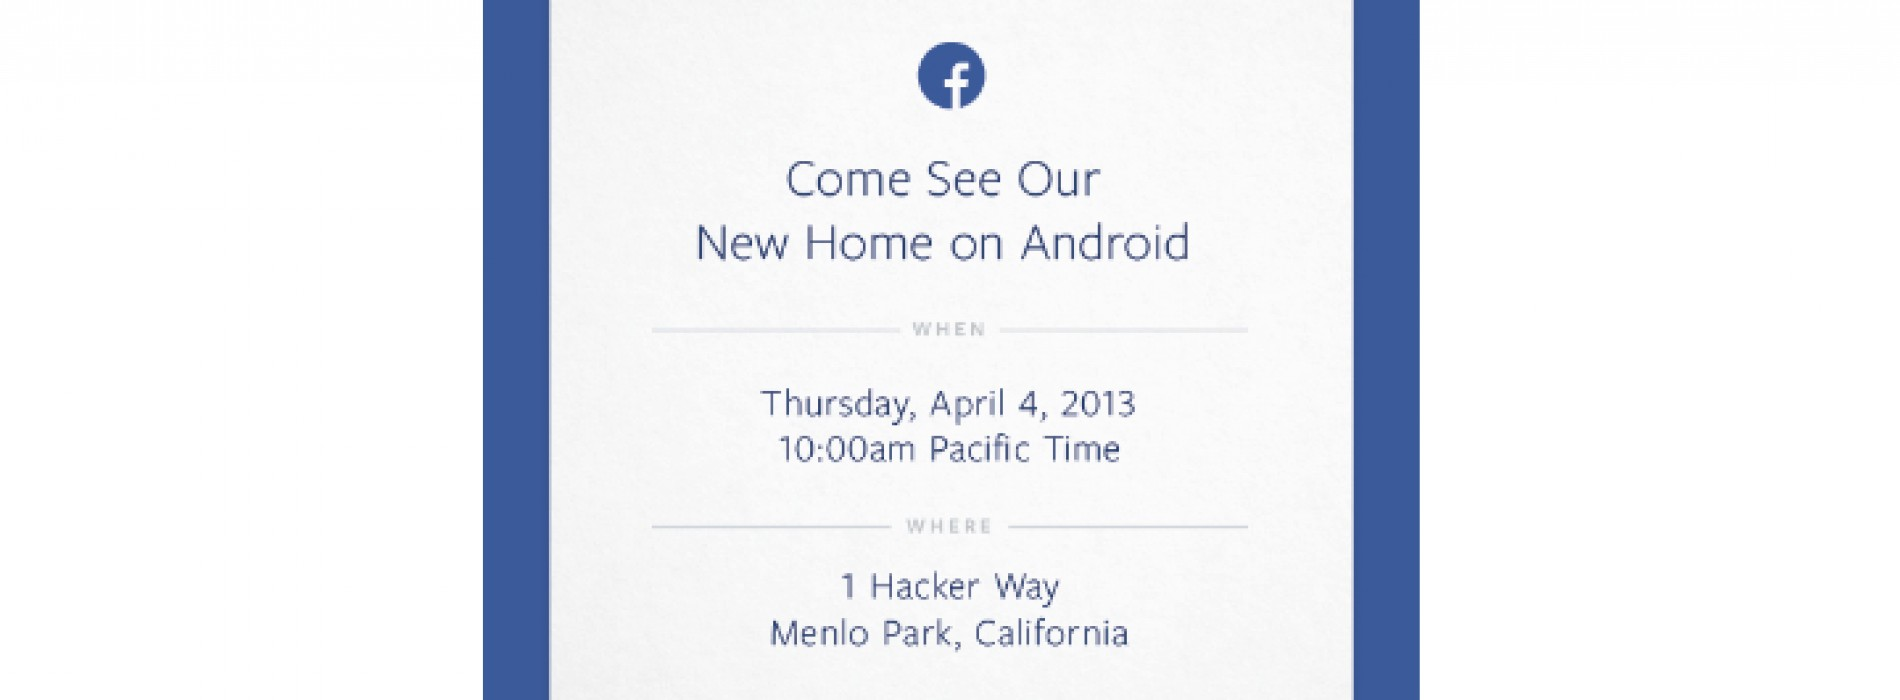 "Facebook invites us to see their ""new home on Android"" next week"